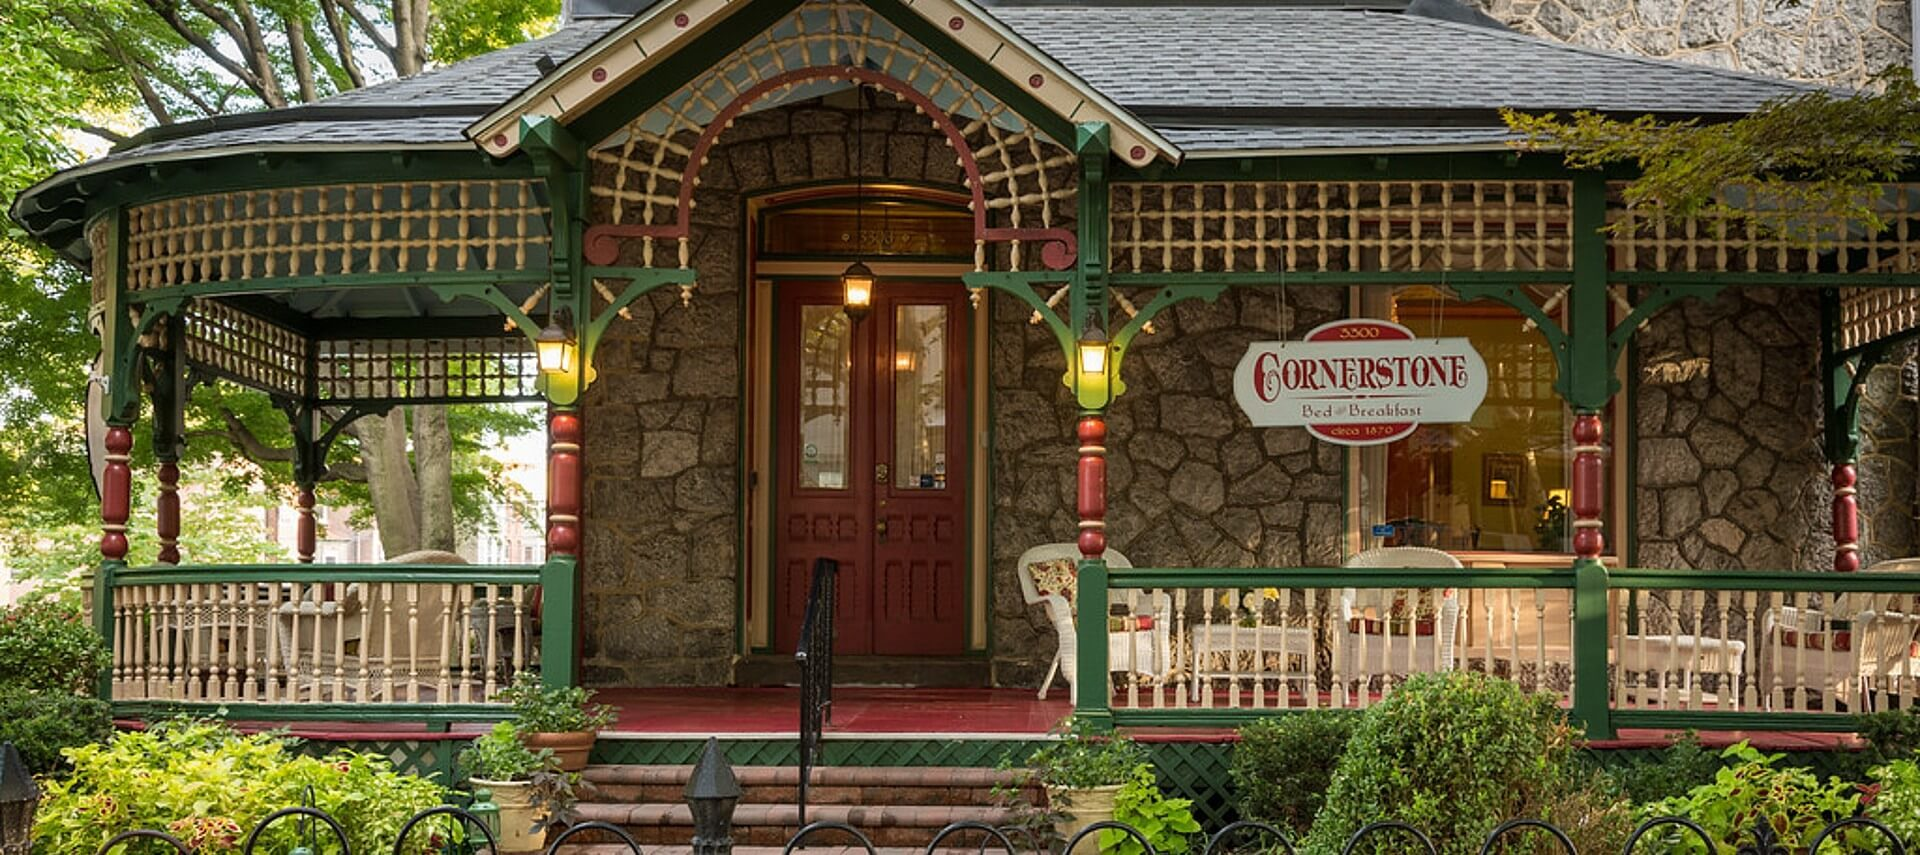 Front facade of a home with stone walls and large wrap around porch painted green and red